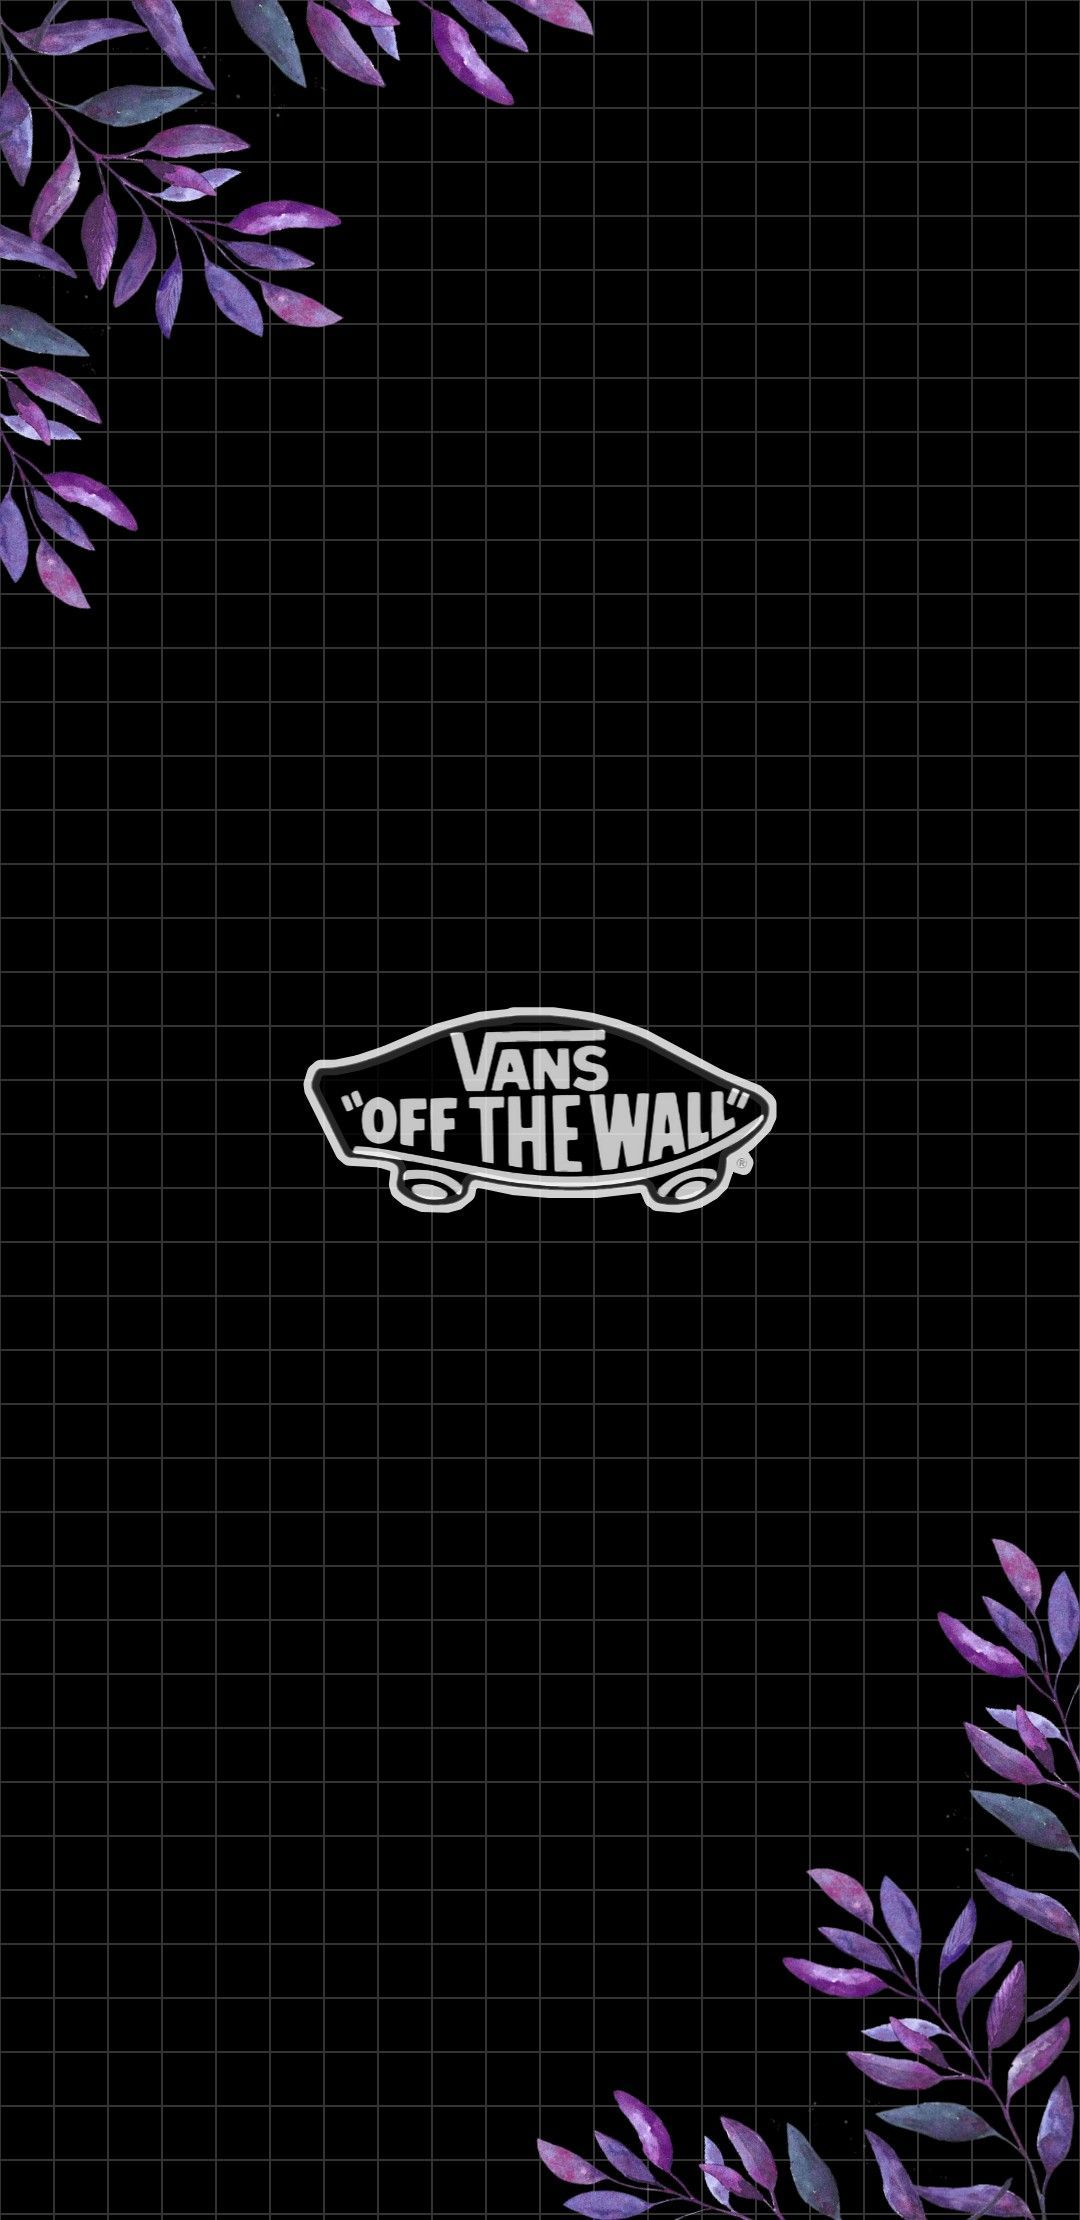 Aesthetic Brand Wallpaper Download Free Full Hd Wallpapers Background Images In 2020 Iphone Wallpaper Vans Dark Wallpaper Iphone Iphone Wallpaper